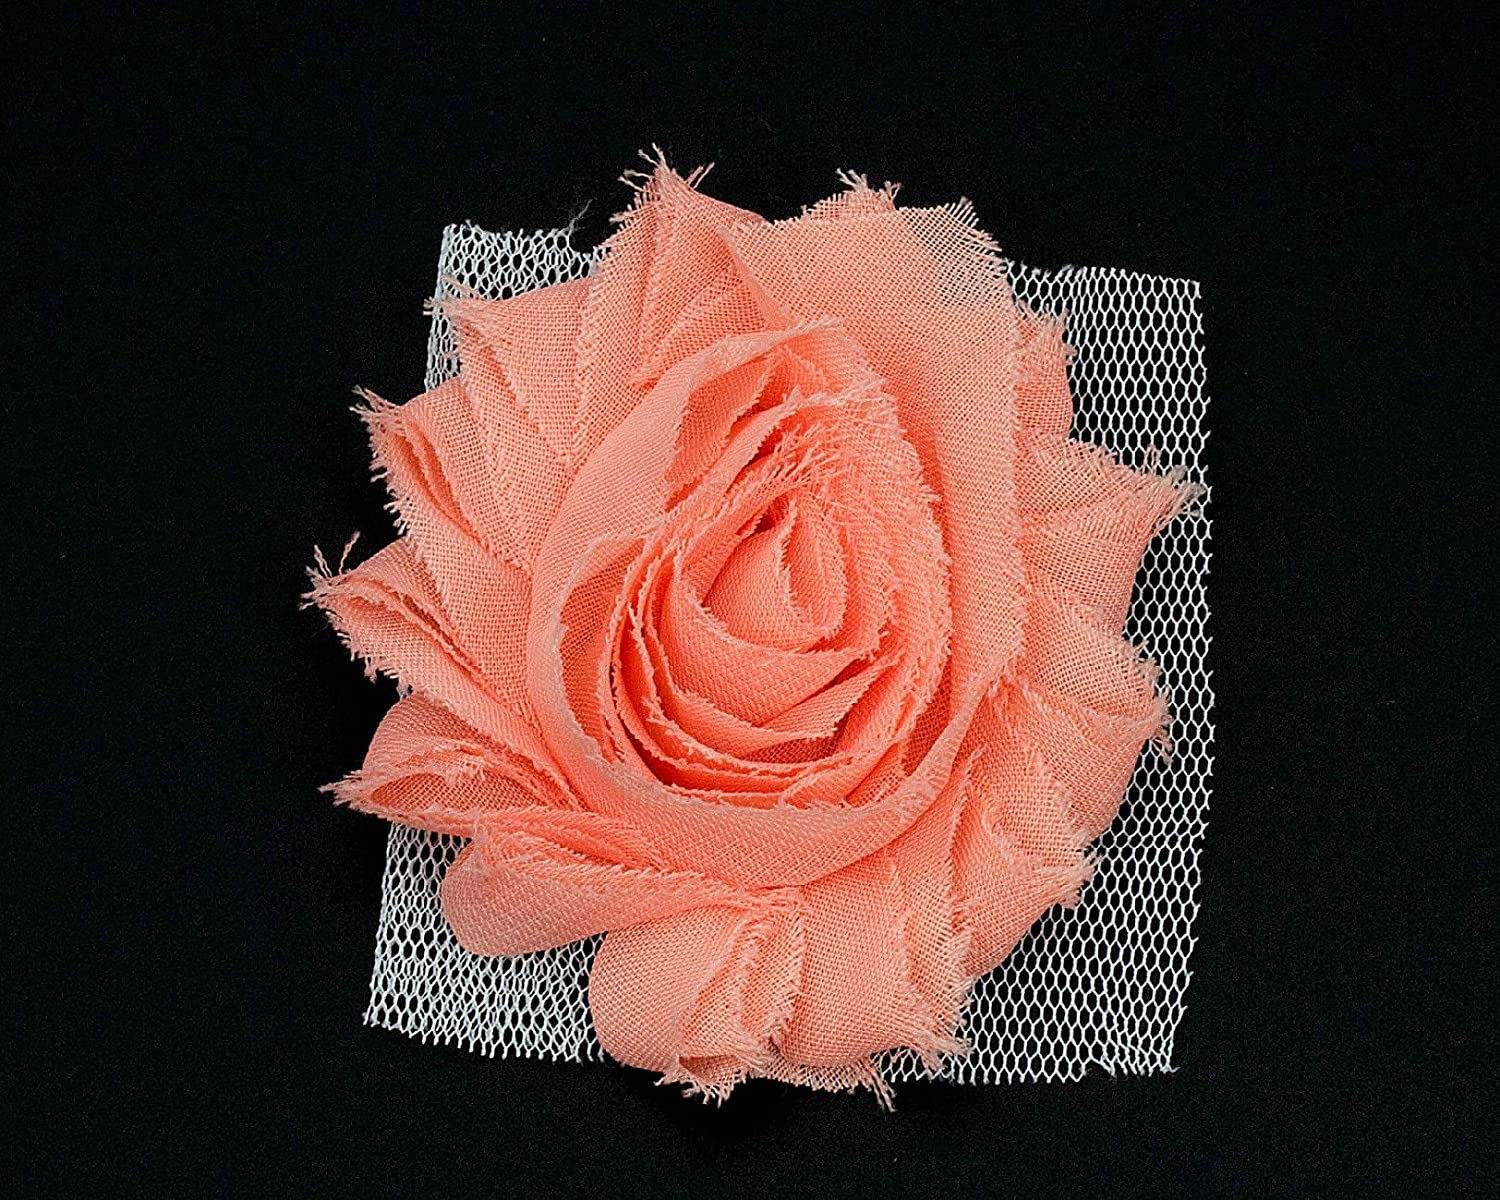 JLIKA 50 Pieces Shabby Flowers - Chiffon Fabric Roses - 2.5 - Solids and Prints Included - Assorted Color Mix - Single Flowers Grab Bag